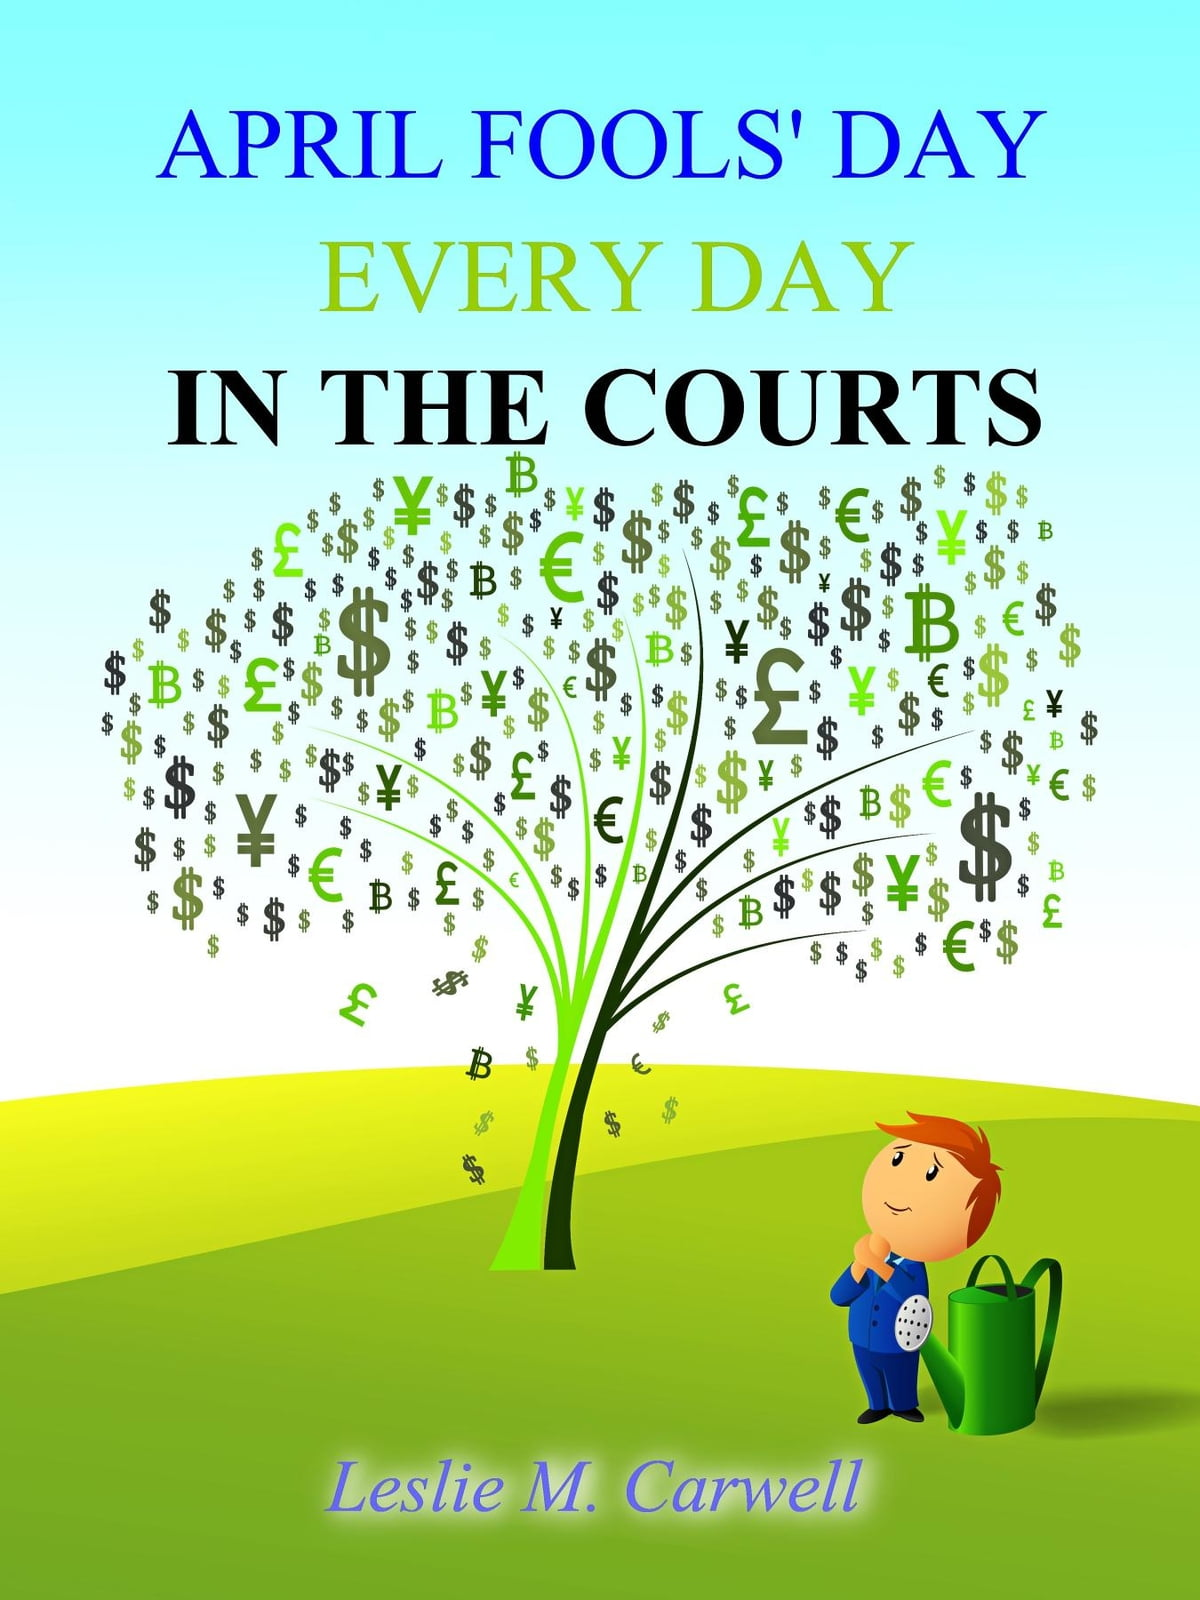 Every Day Seems To Be April Fools Day >> April Fools Day Every Day In The Courts E Kitap Leslie M Carwell